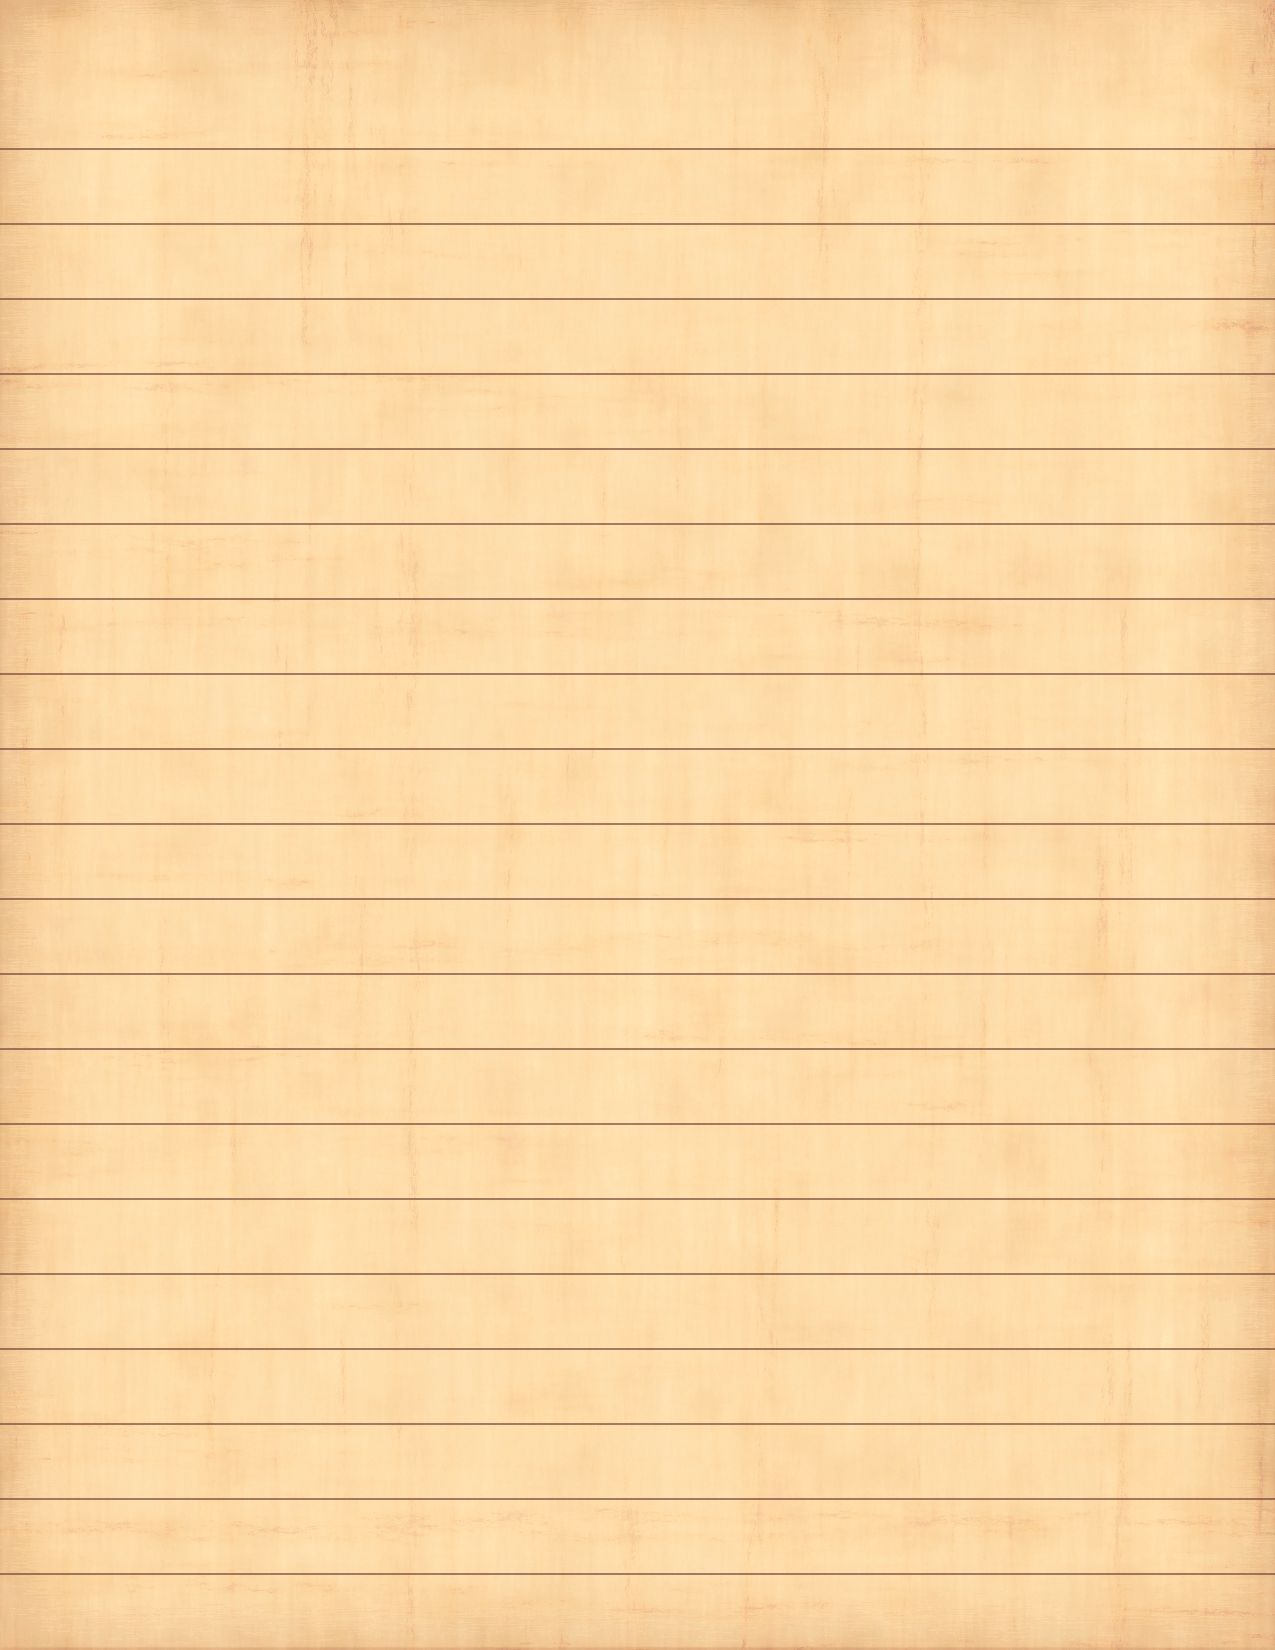 Old Lined Paper Template for Free | Writing paper ...